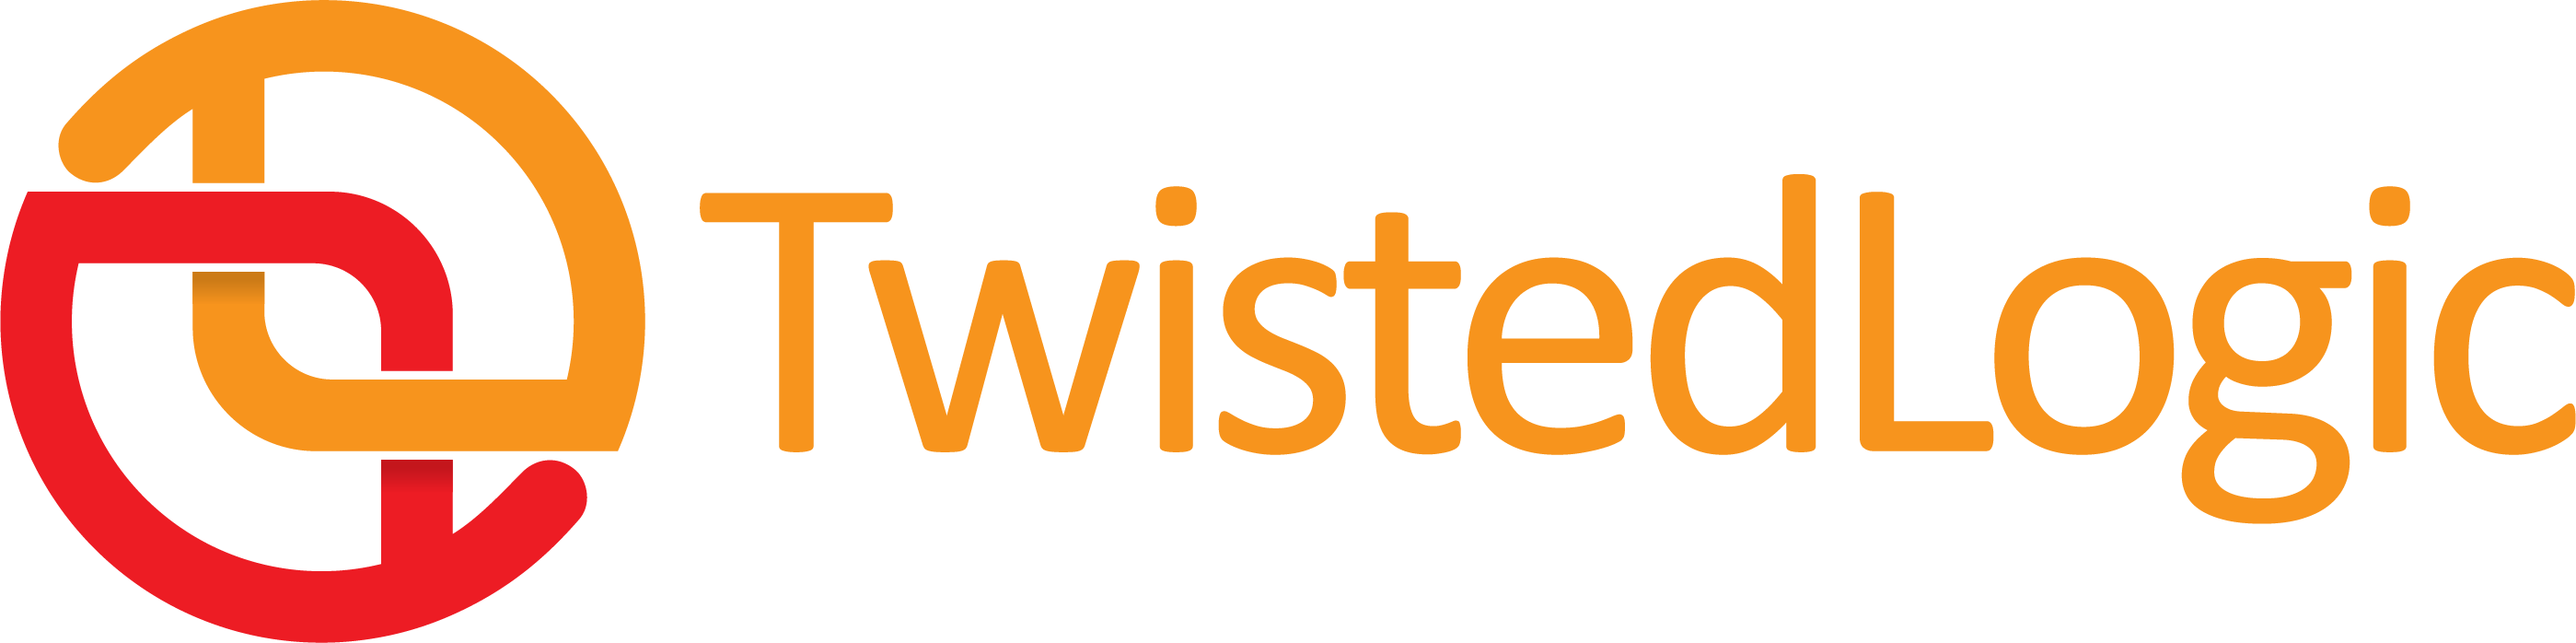 Twisted Logic Cyber Security Services